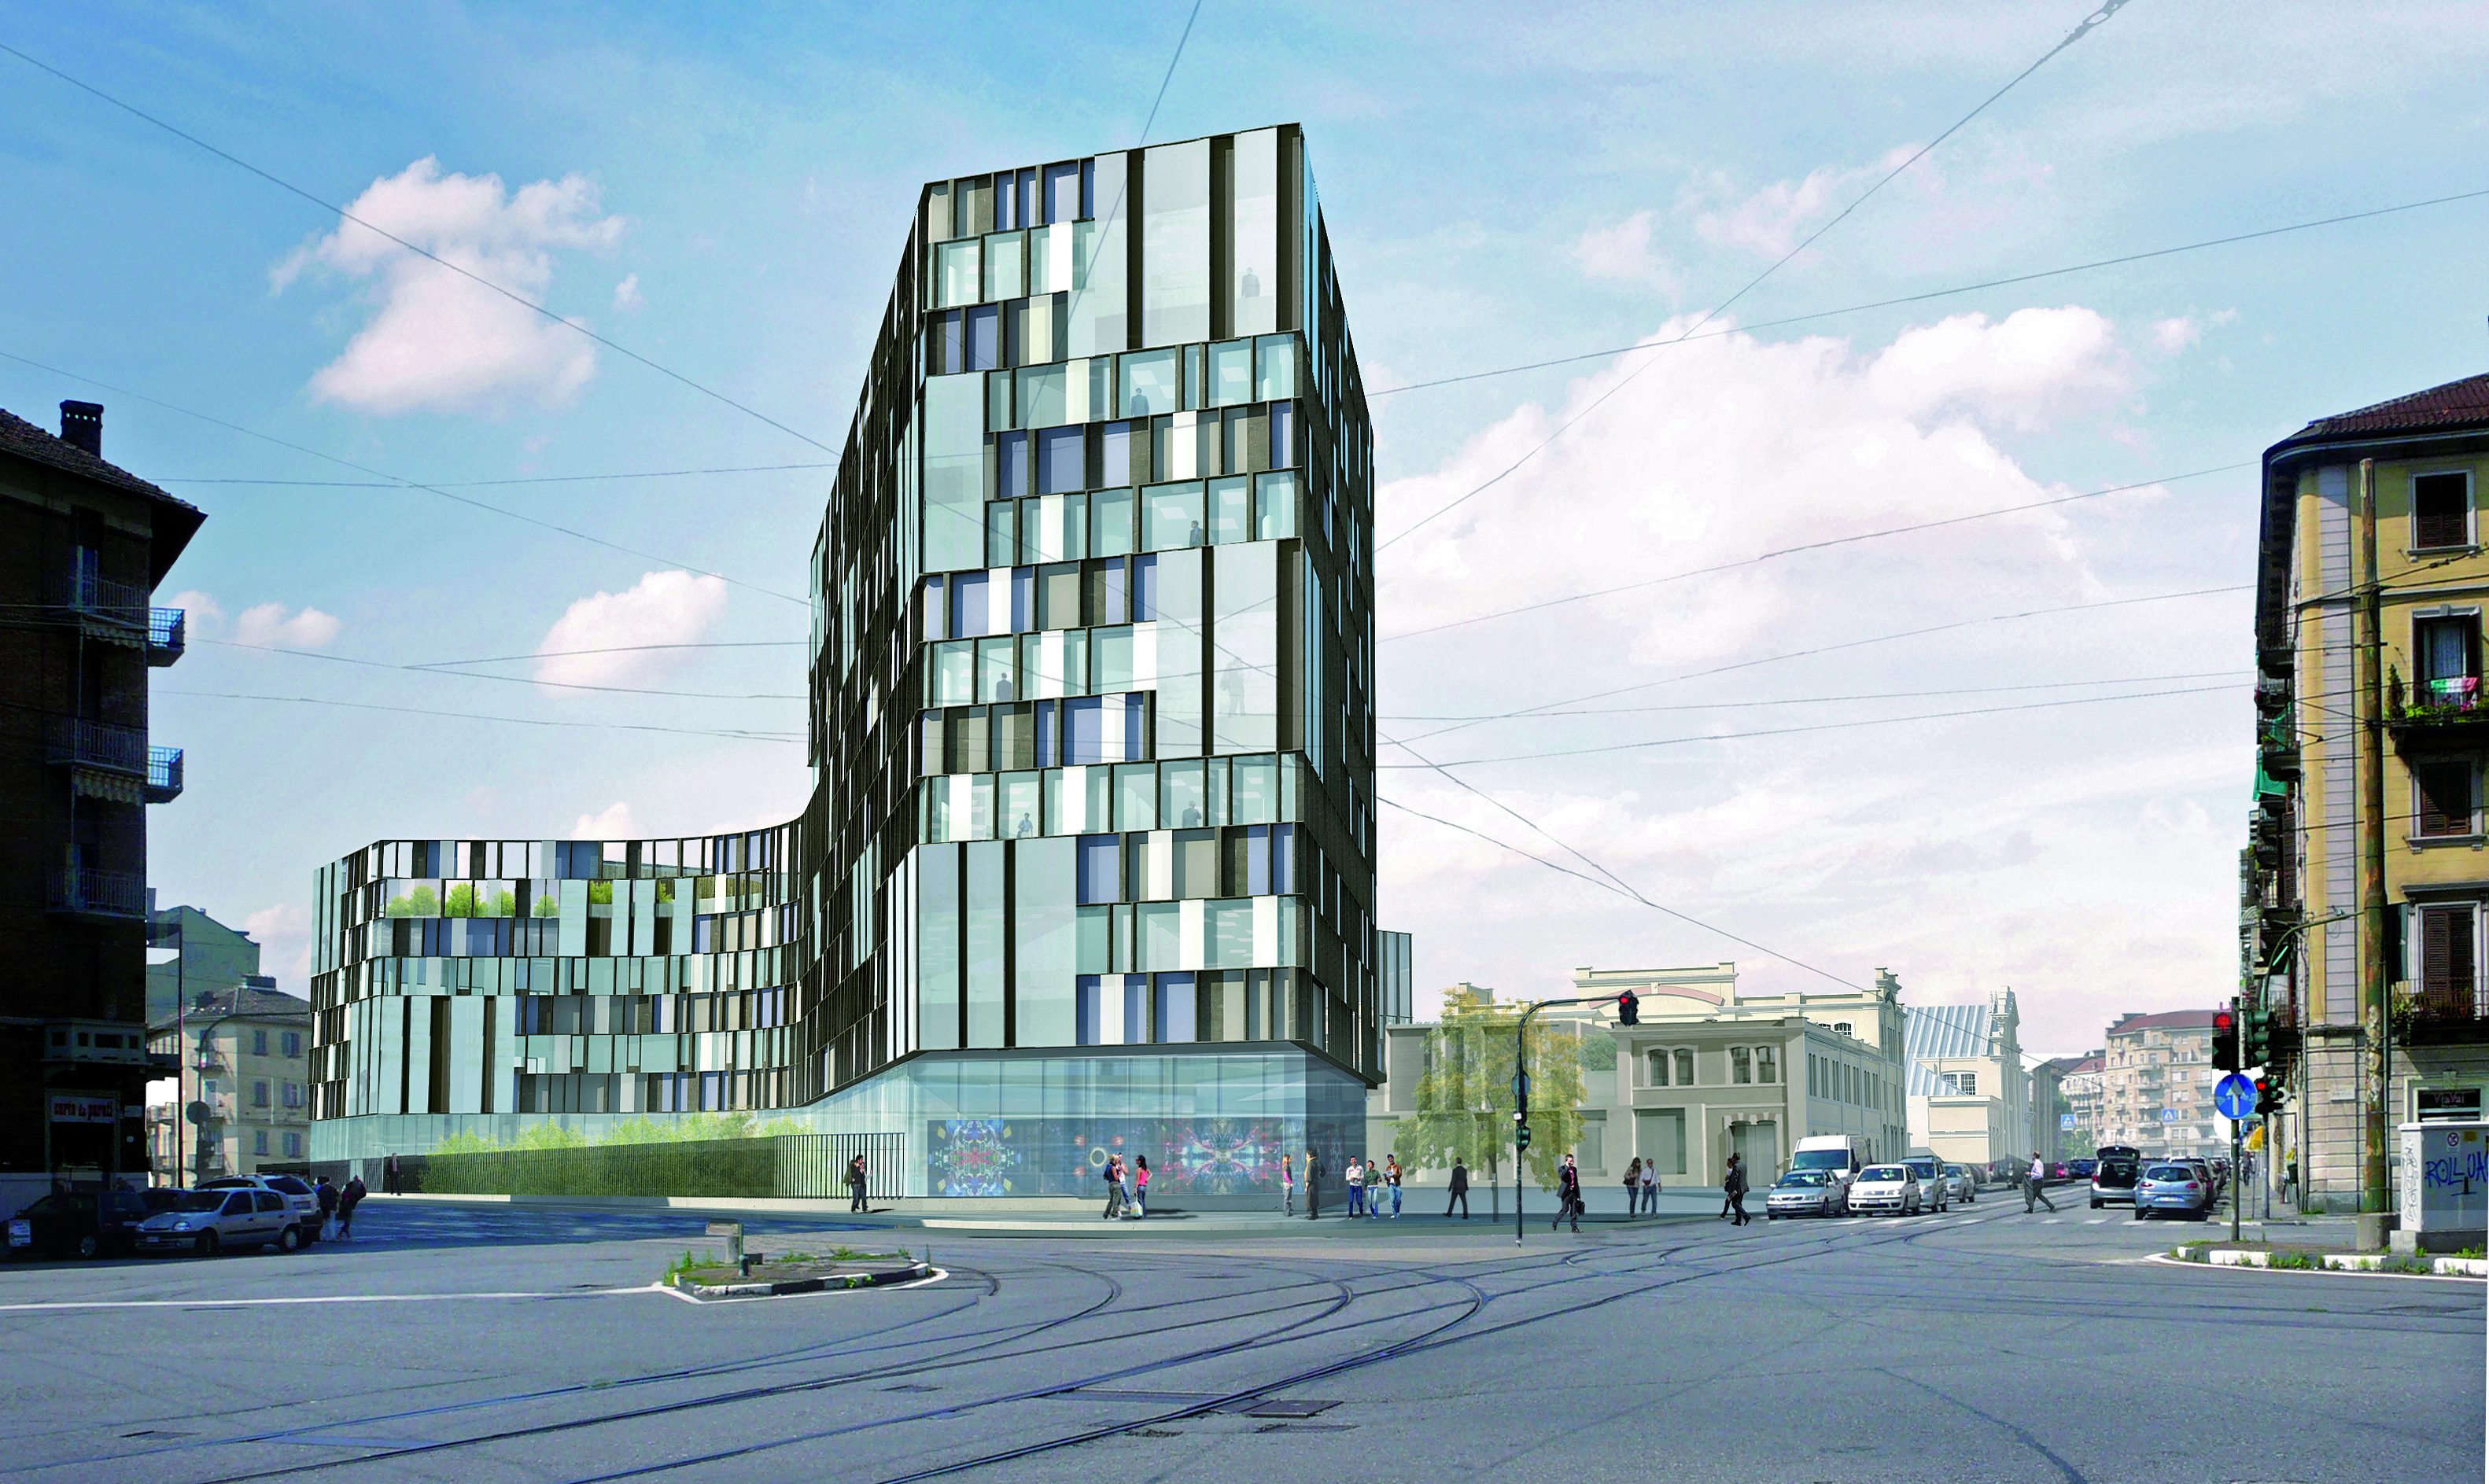 The new Lavazza headquarters in Aurora neighborhood, in Turin, will host a restaurant by Catalan brothers Ferran and Albert Adrià.